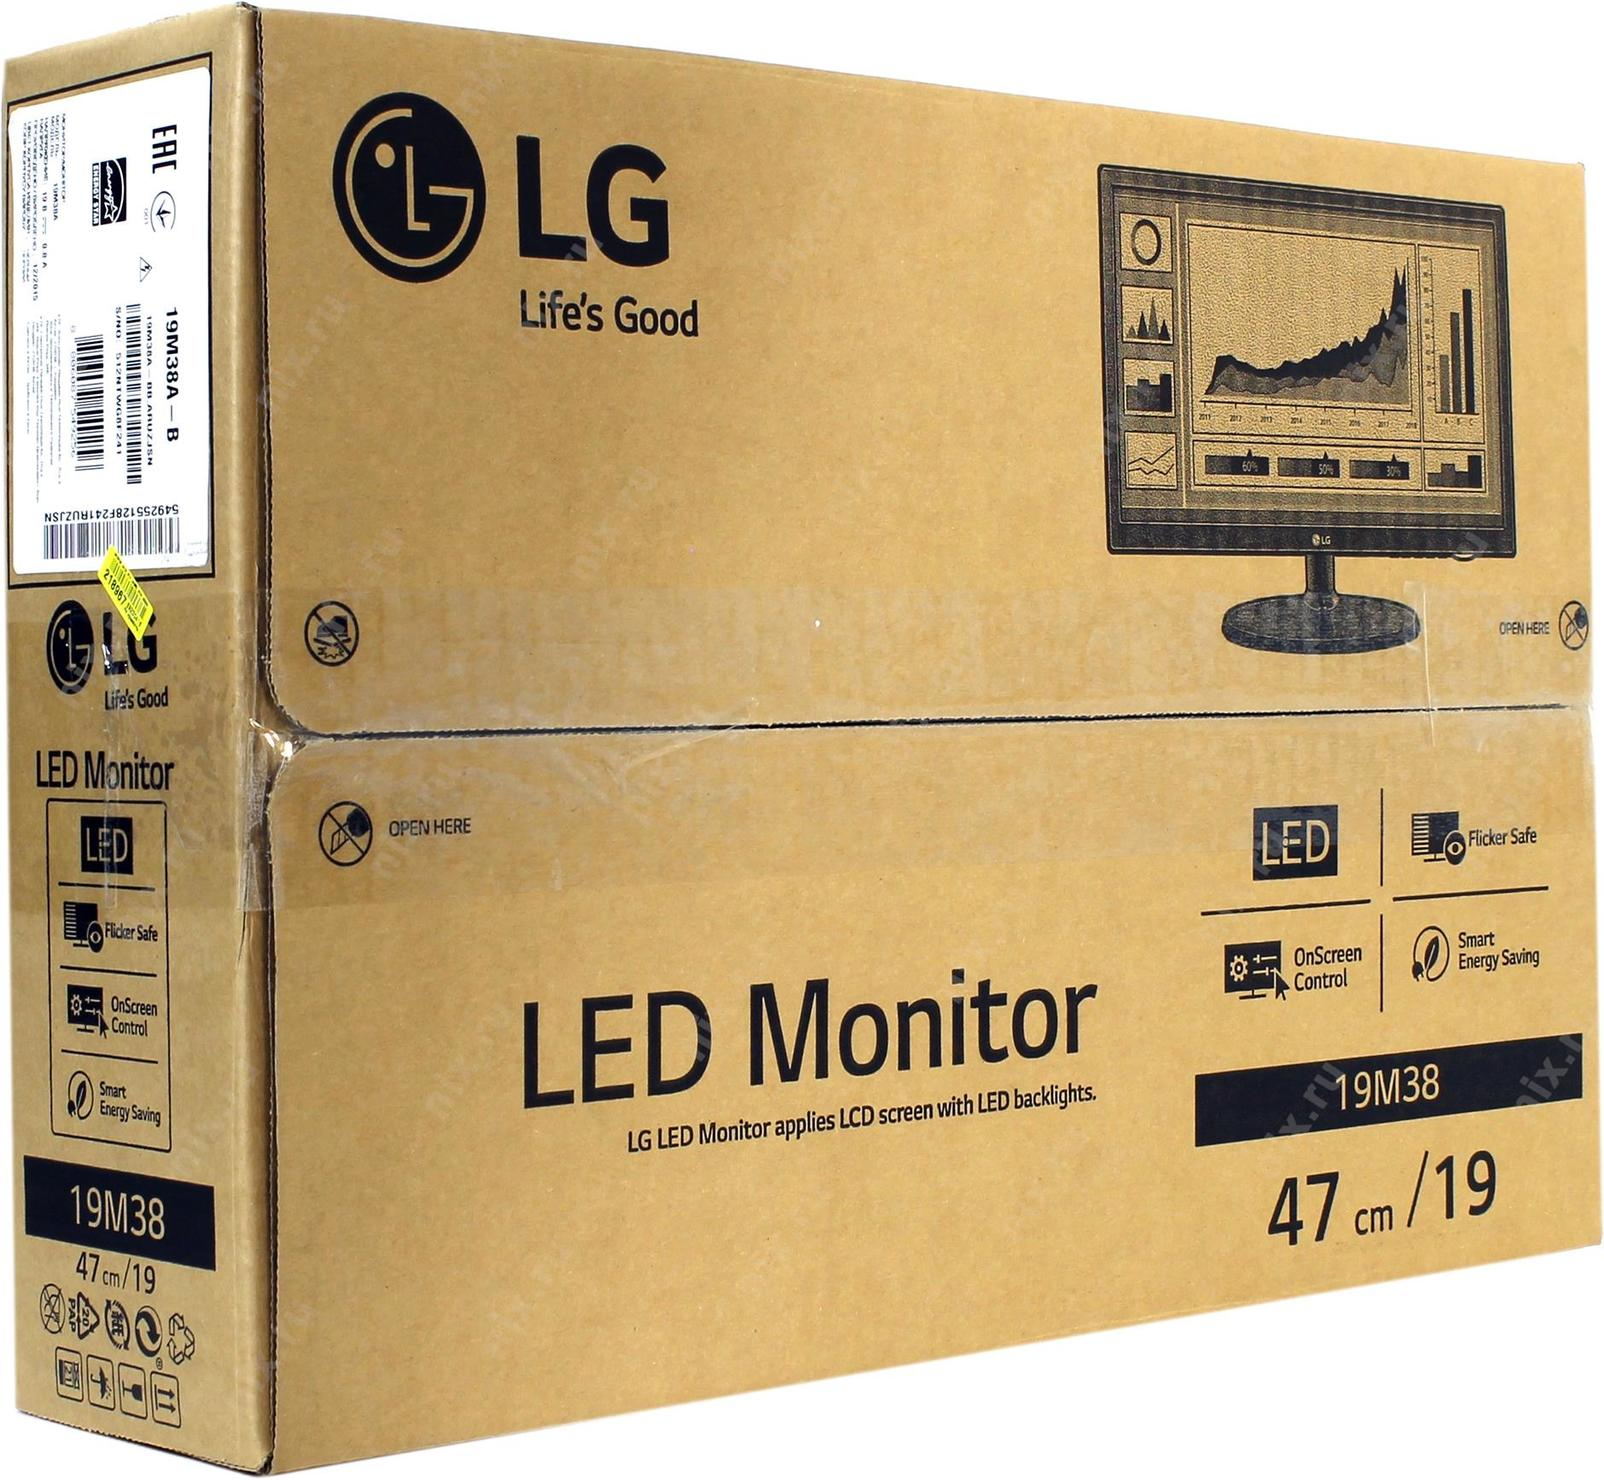 Lg 19m38a B Monitor Led 19m38 185 Wide Screen